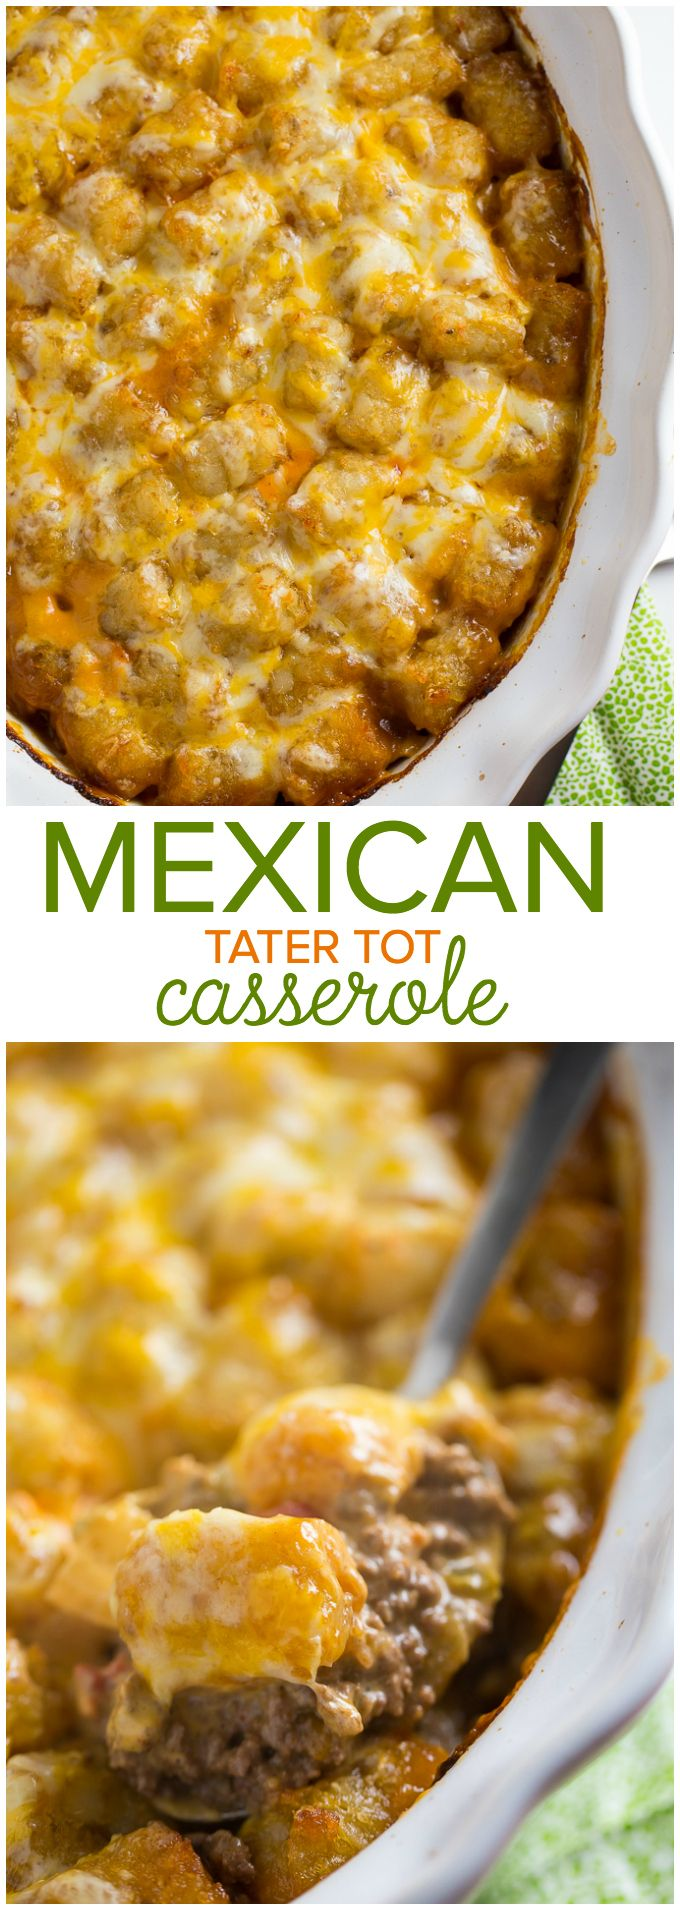 Mexican Tater Tot Casserole | Recipe | Tater tots ...